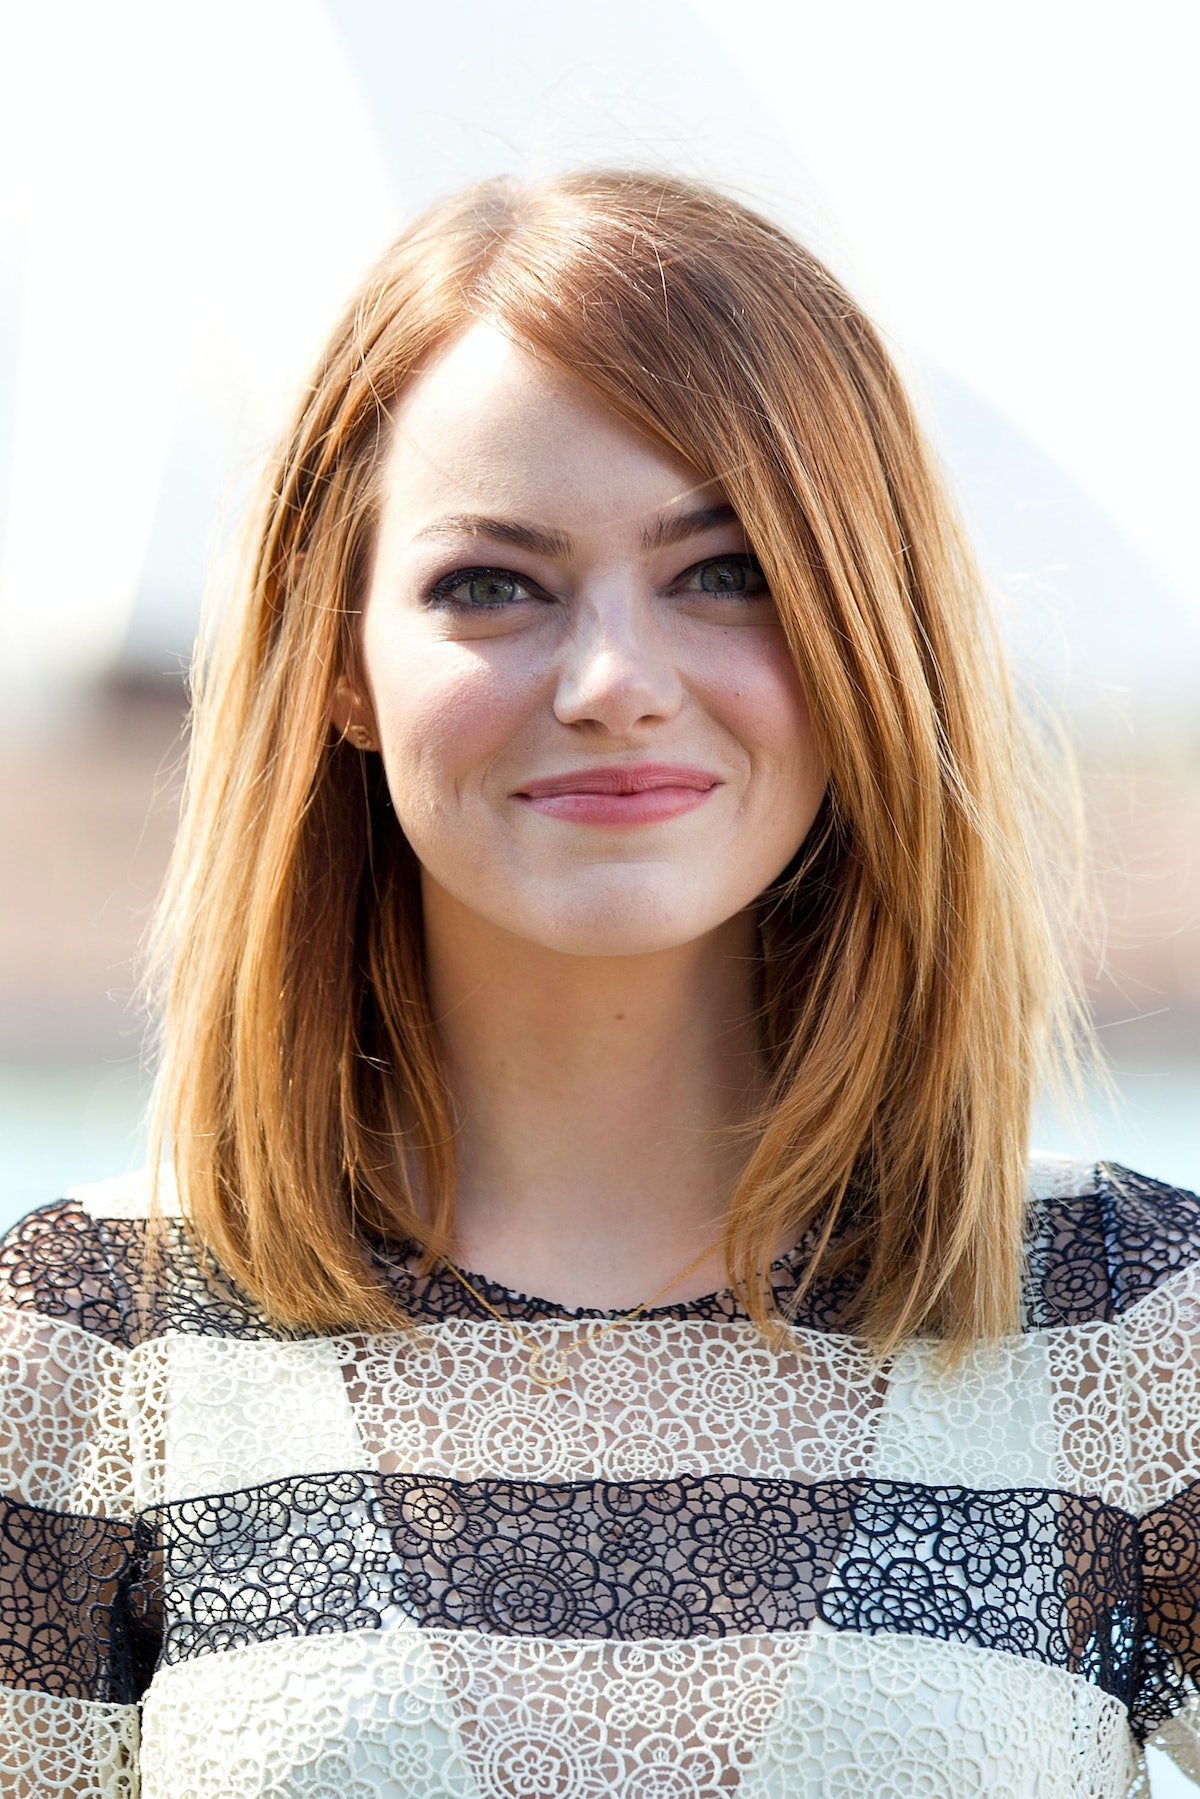 """Emma Stone at """"The Amazing Spider-Man 2: Rise Of Electro"""" photocall on March 20, 2014 in Sydney, Aus..."""